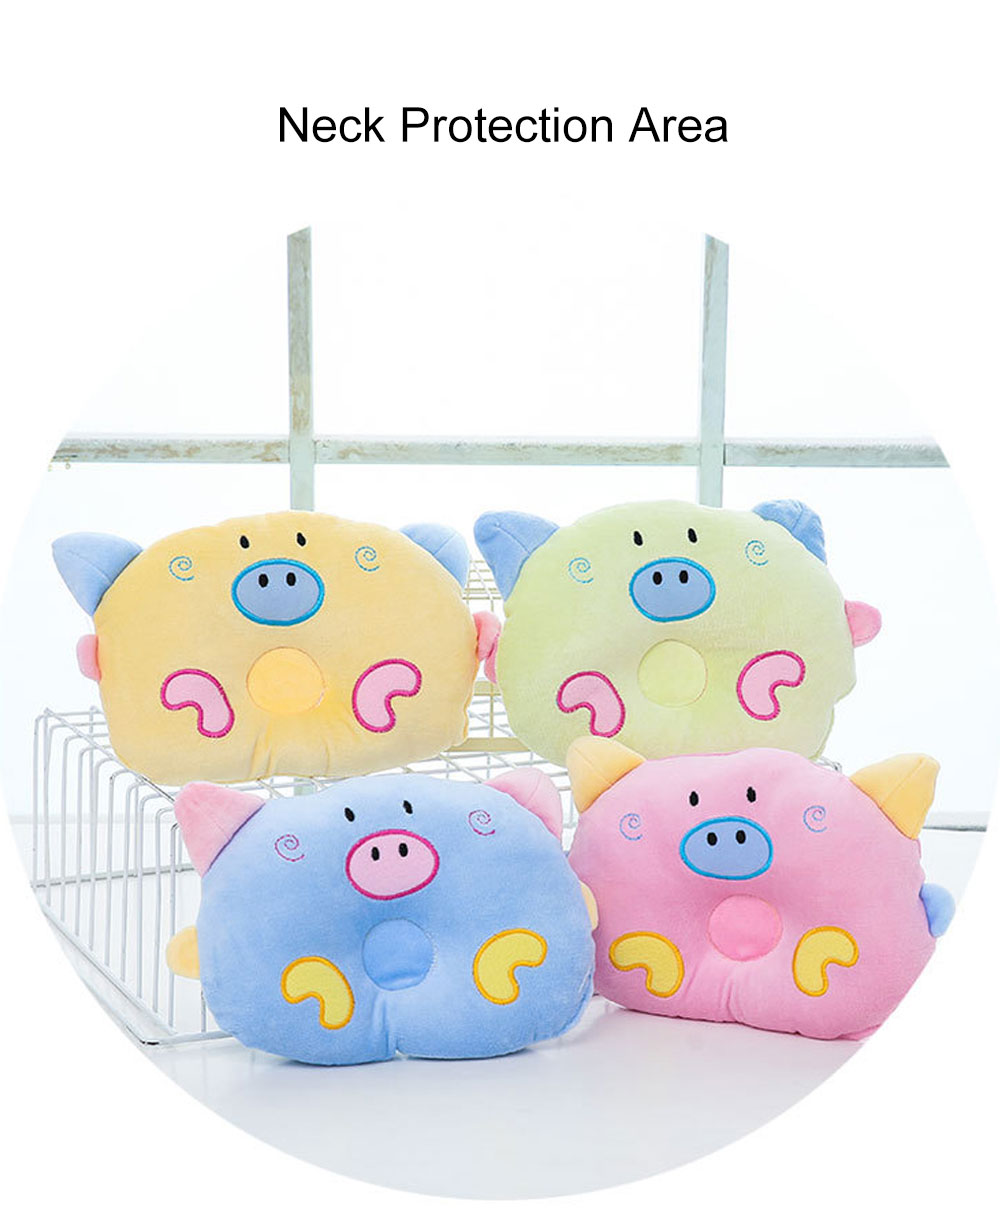 Cute Carton Pig Model Embroidery Anti-Roll Newborn Baby Pillow Soft Breathable Fluff Infant Prevent Flat Head Pillow 7